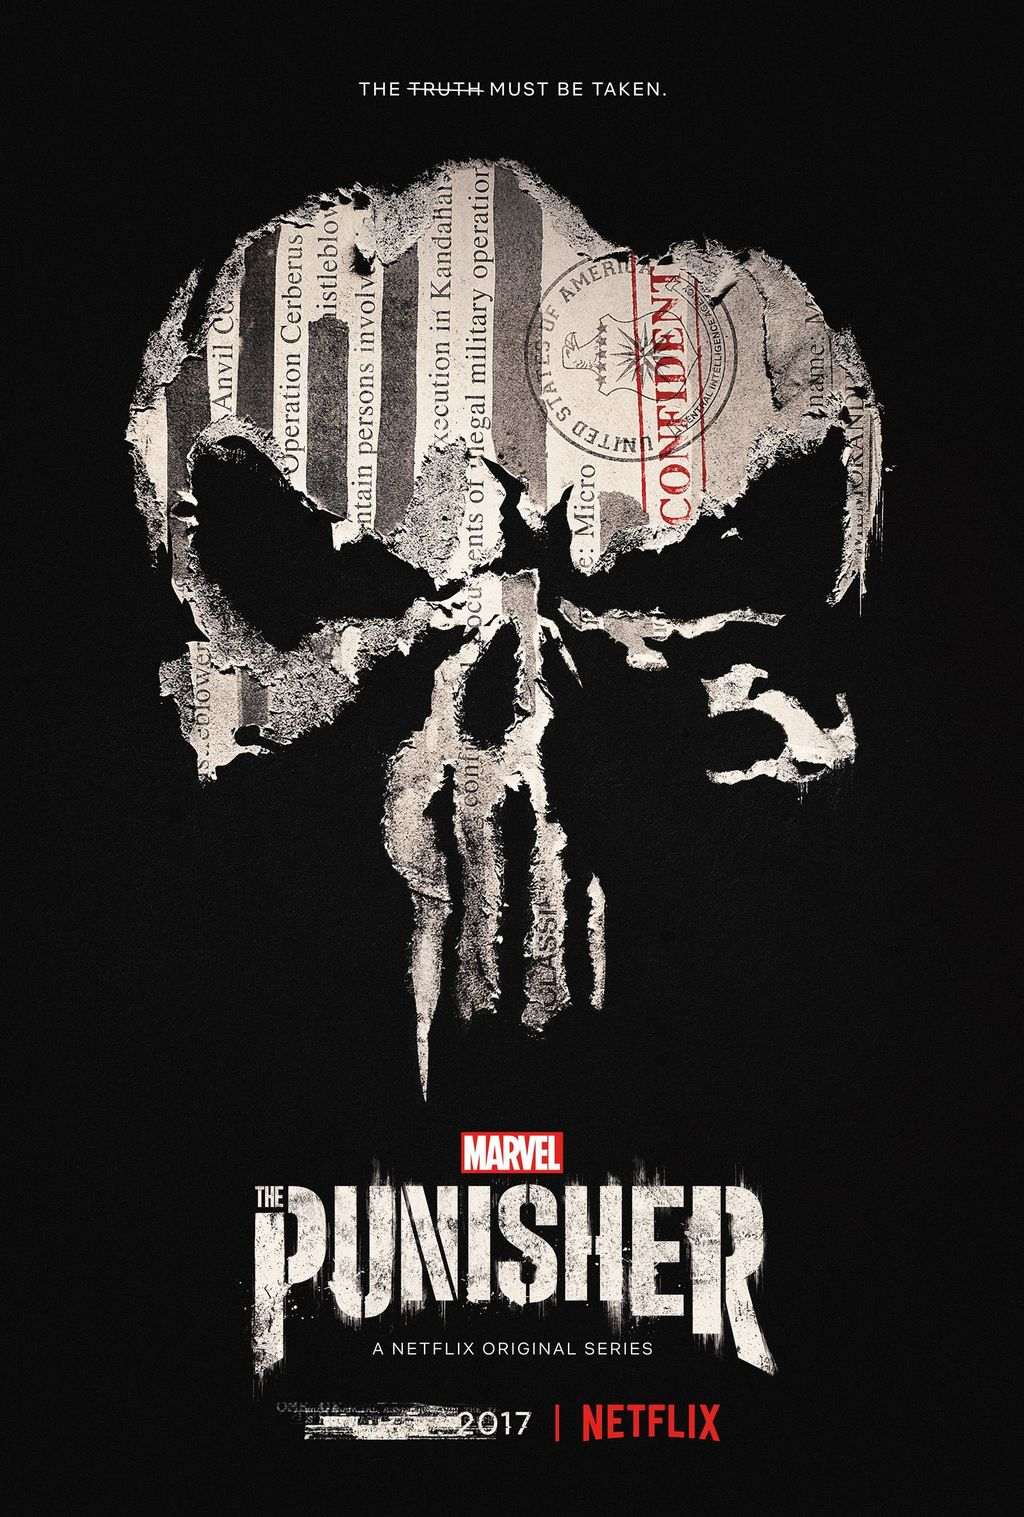 The-Punisher-Poster-Redacted-Release-Date.jpg?q=20&w=1024&h=&fit=crop